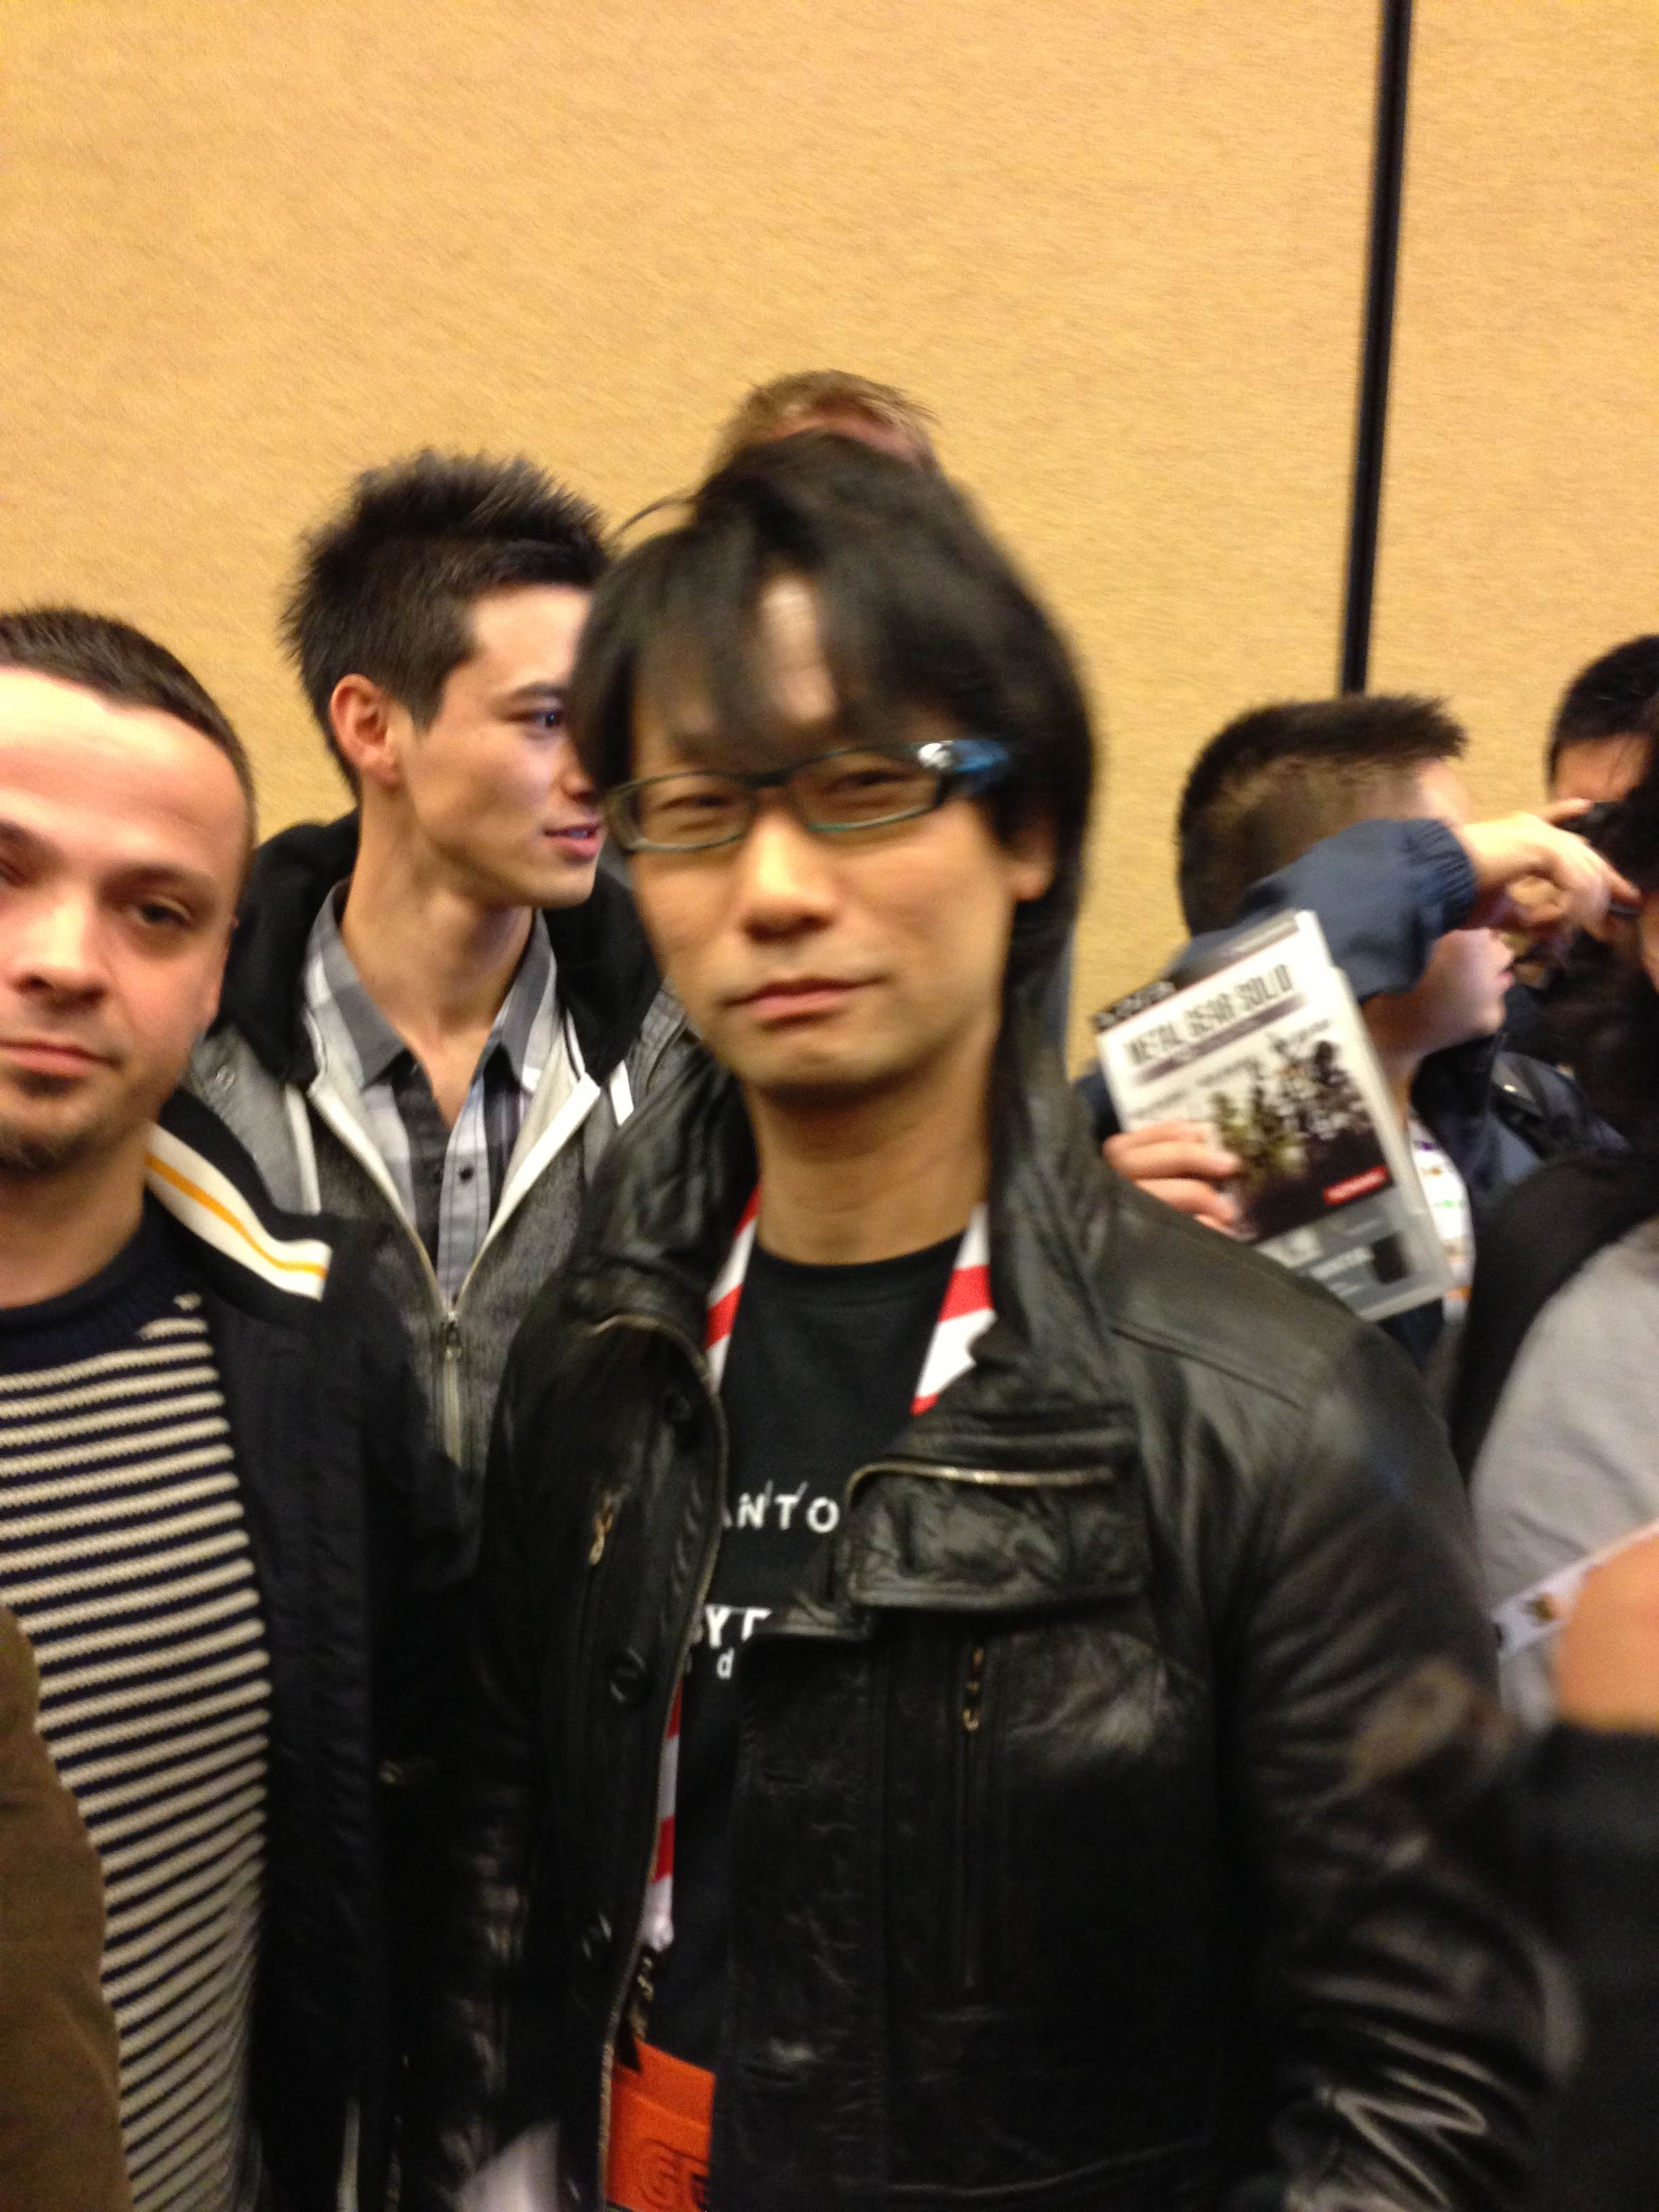 Hideo Kojima, father of Metal Gear, as captured by Shaveen